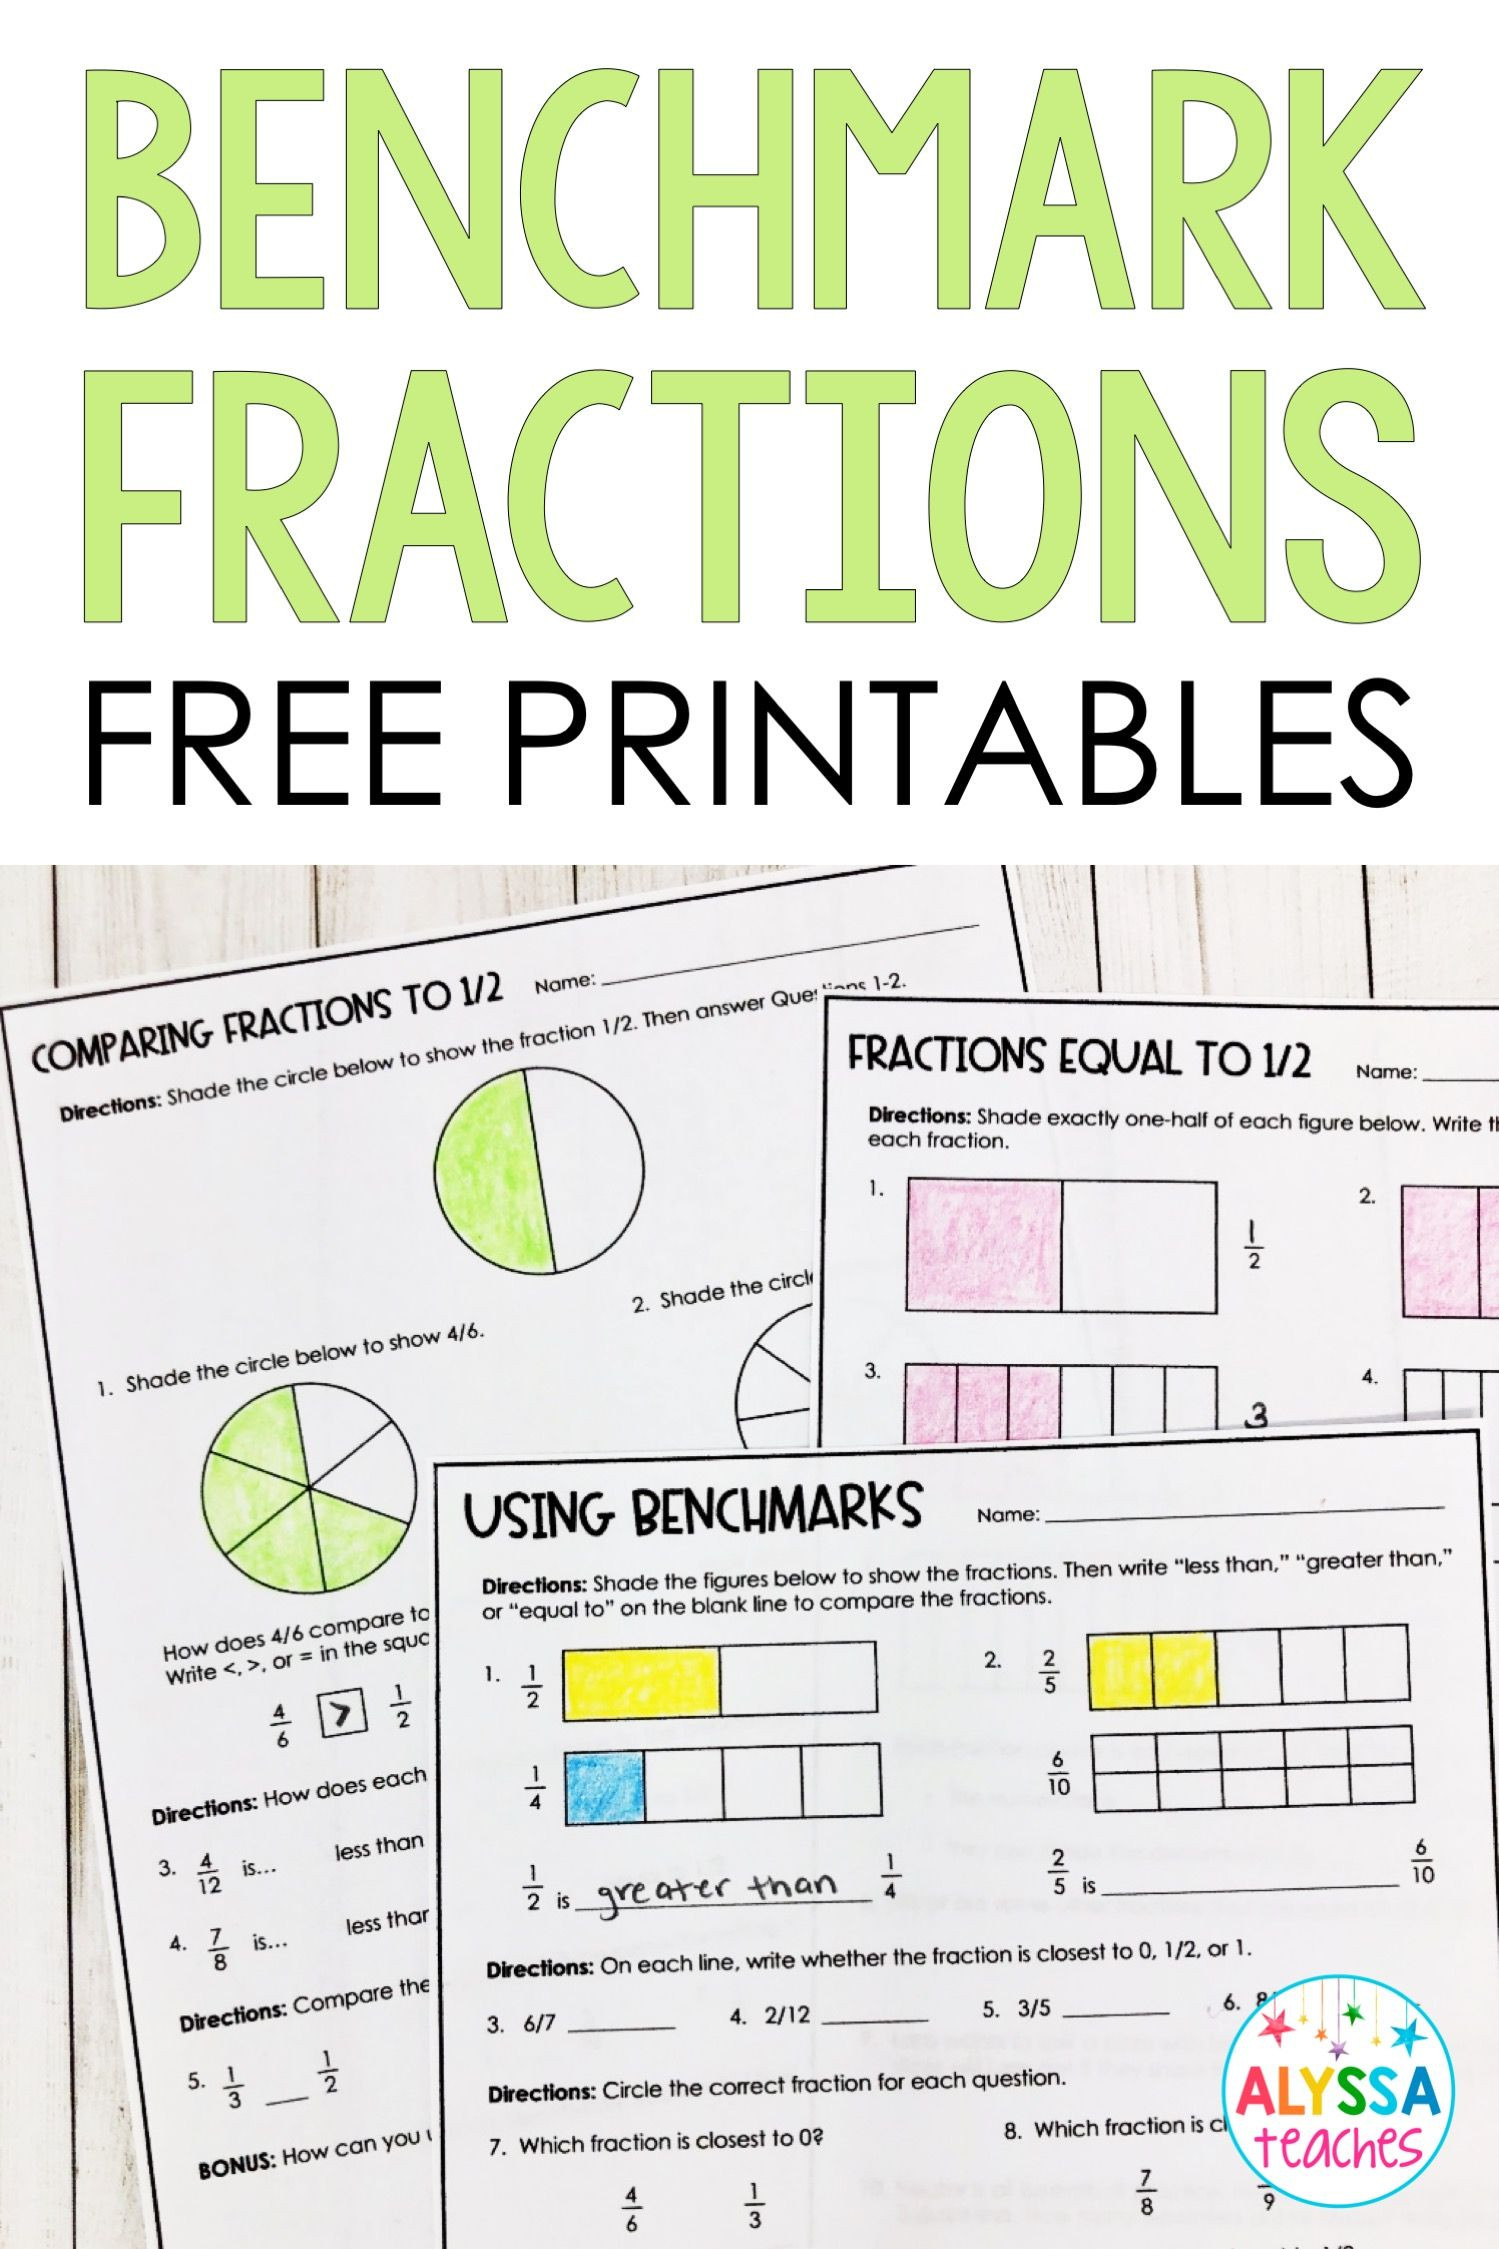 Comparing Fractions Worksheet 4th Grade Benchmarks Fractions Poster and Worksheets